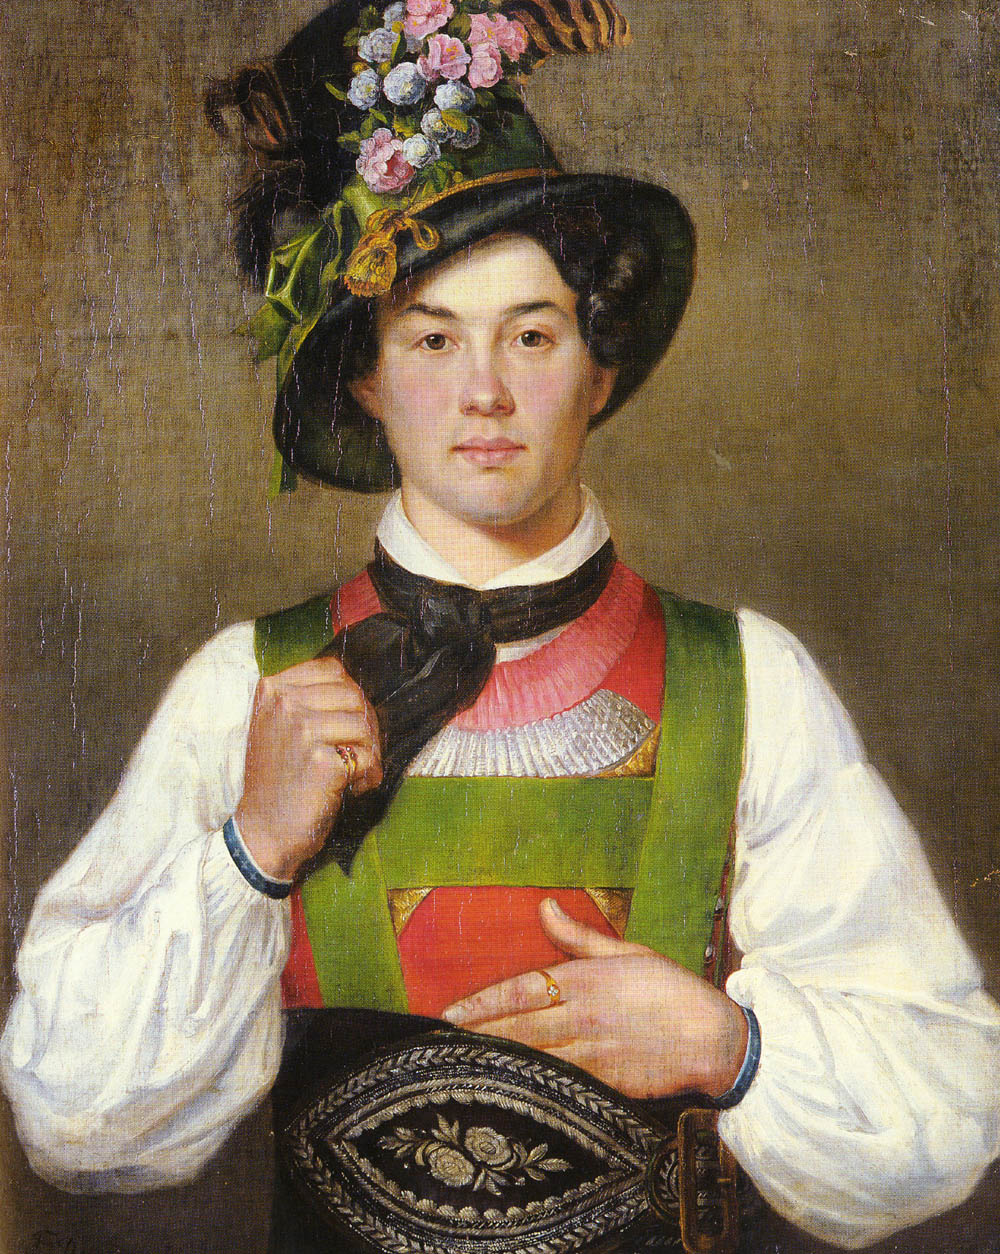 A Young Man in Tyrolean Costume | Franz Von Defregger | Oil Painting